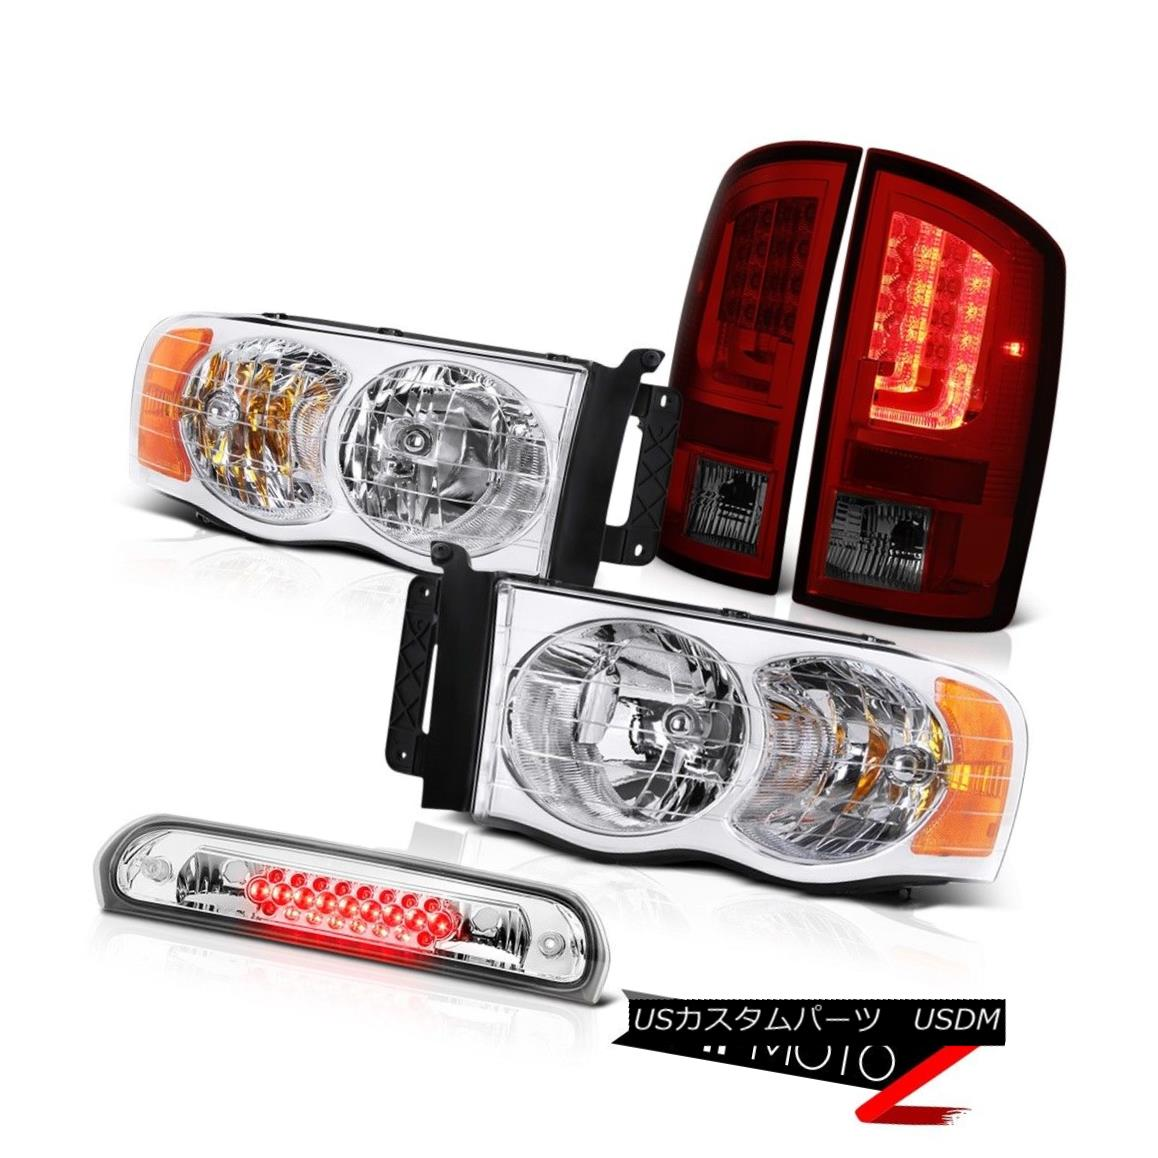 テールライト 02-05 Dodge Ram 2500 1500 3.7L Tail Brake Lights Chrome Headlamps 3RD Lamp LED 02-05 Dodge Ram 2500 1500 3.7Lテールブレーキライトクロームヘッドランプ3RDランプLED